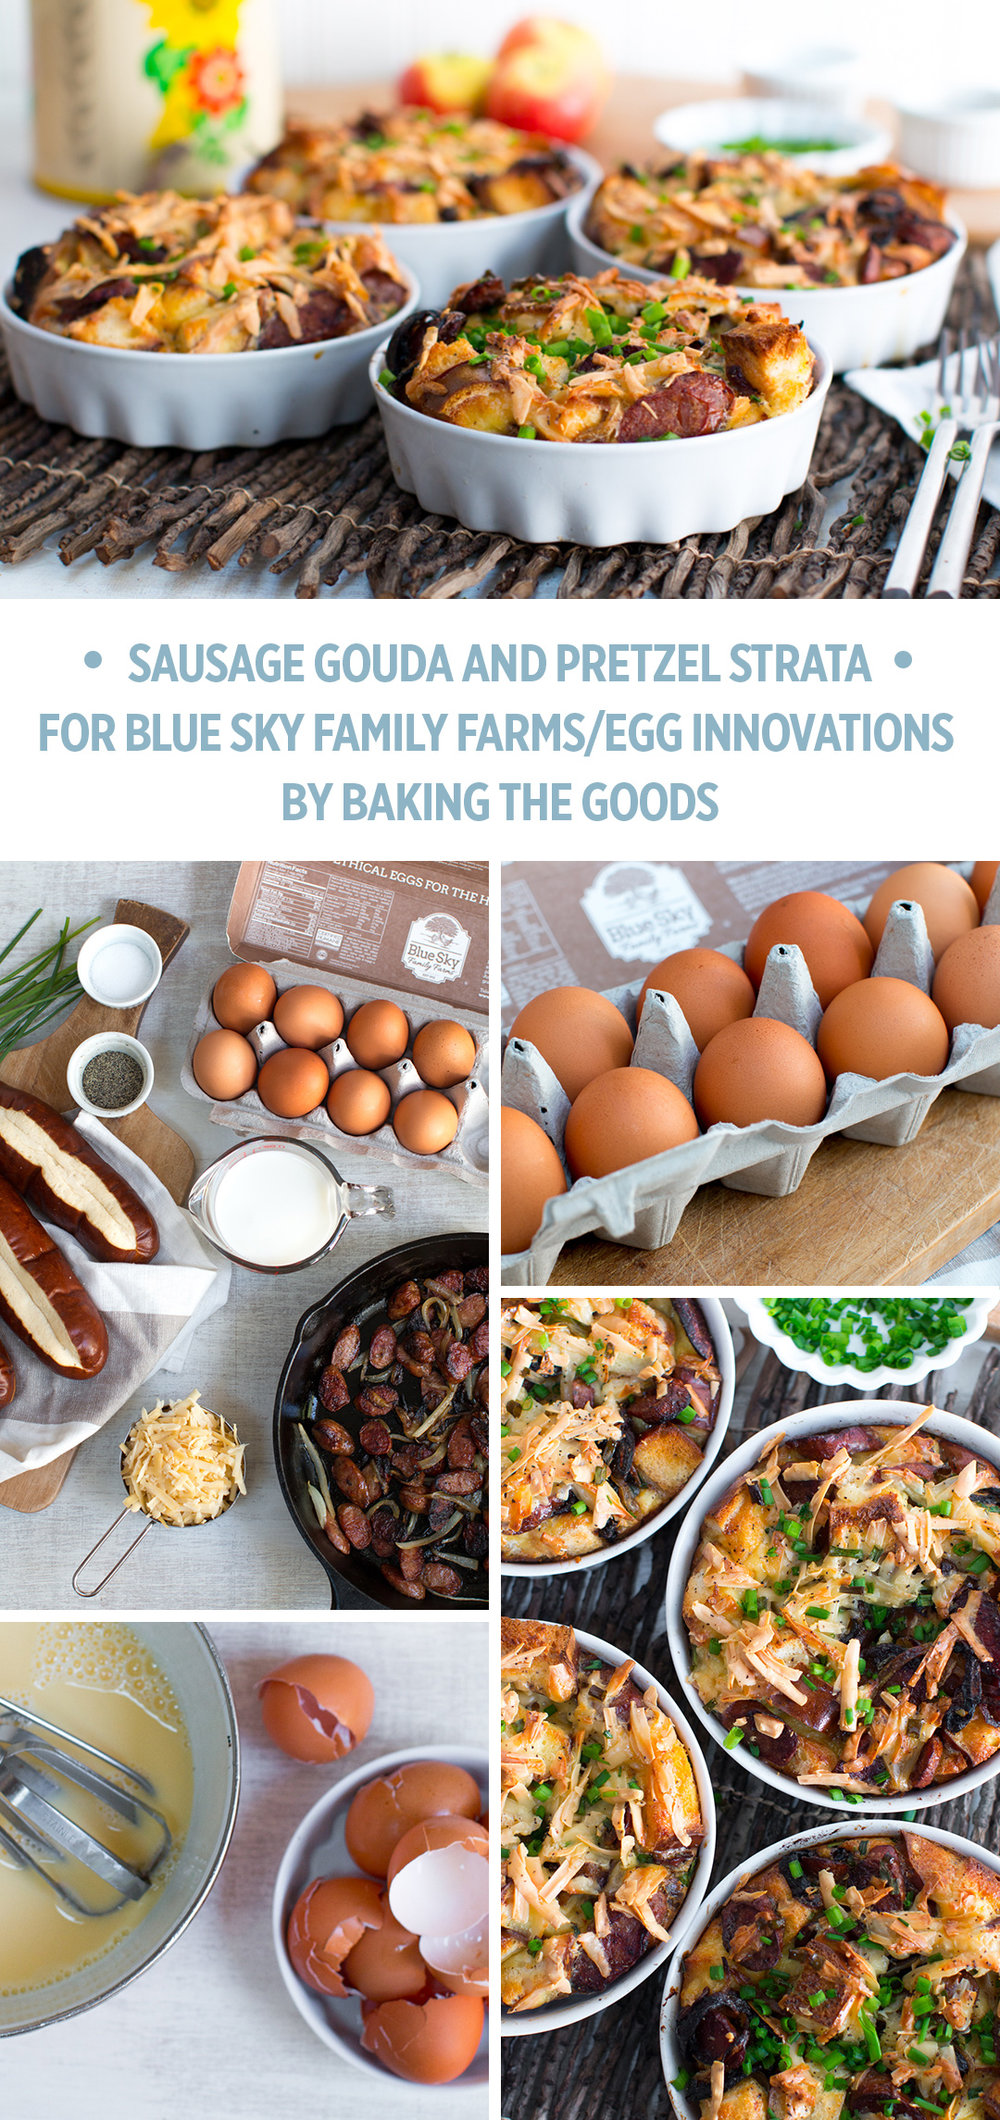 Blue Sky Farms/Egg Innovations